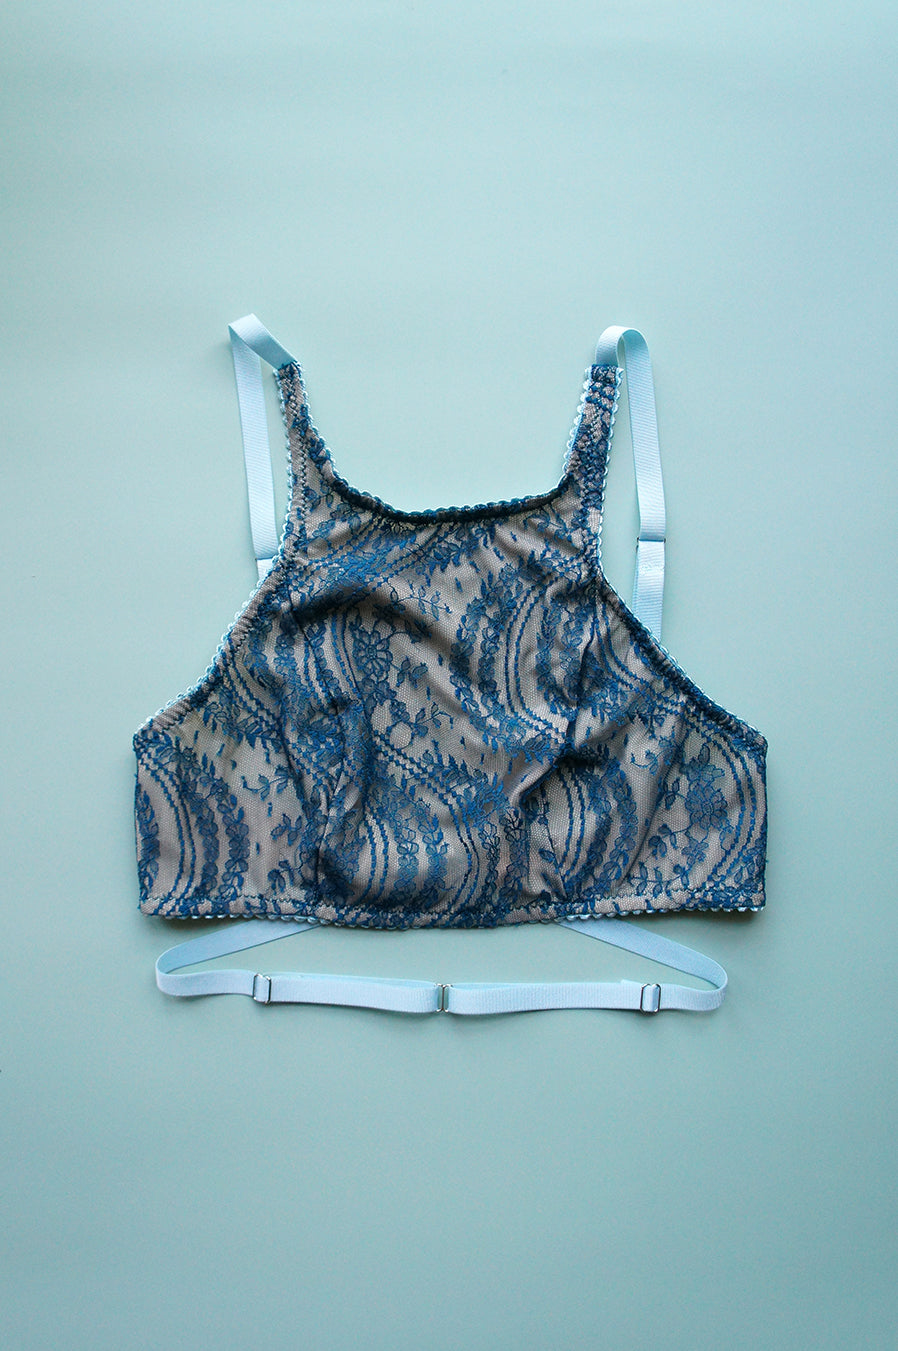 Size XS Teal Lace High Neck Bra Top